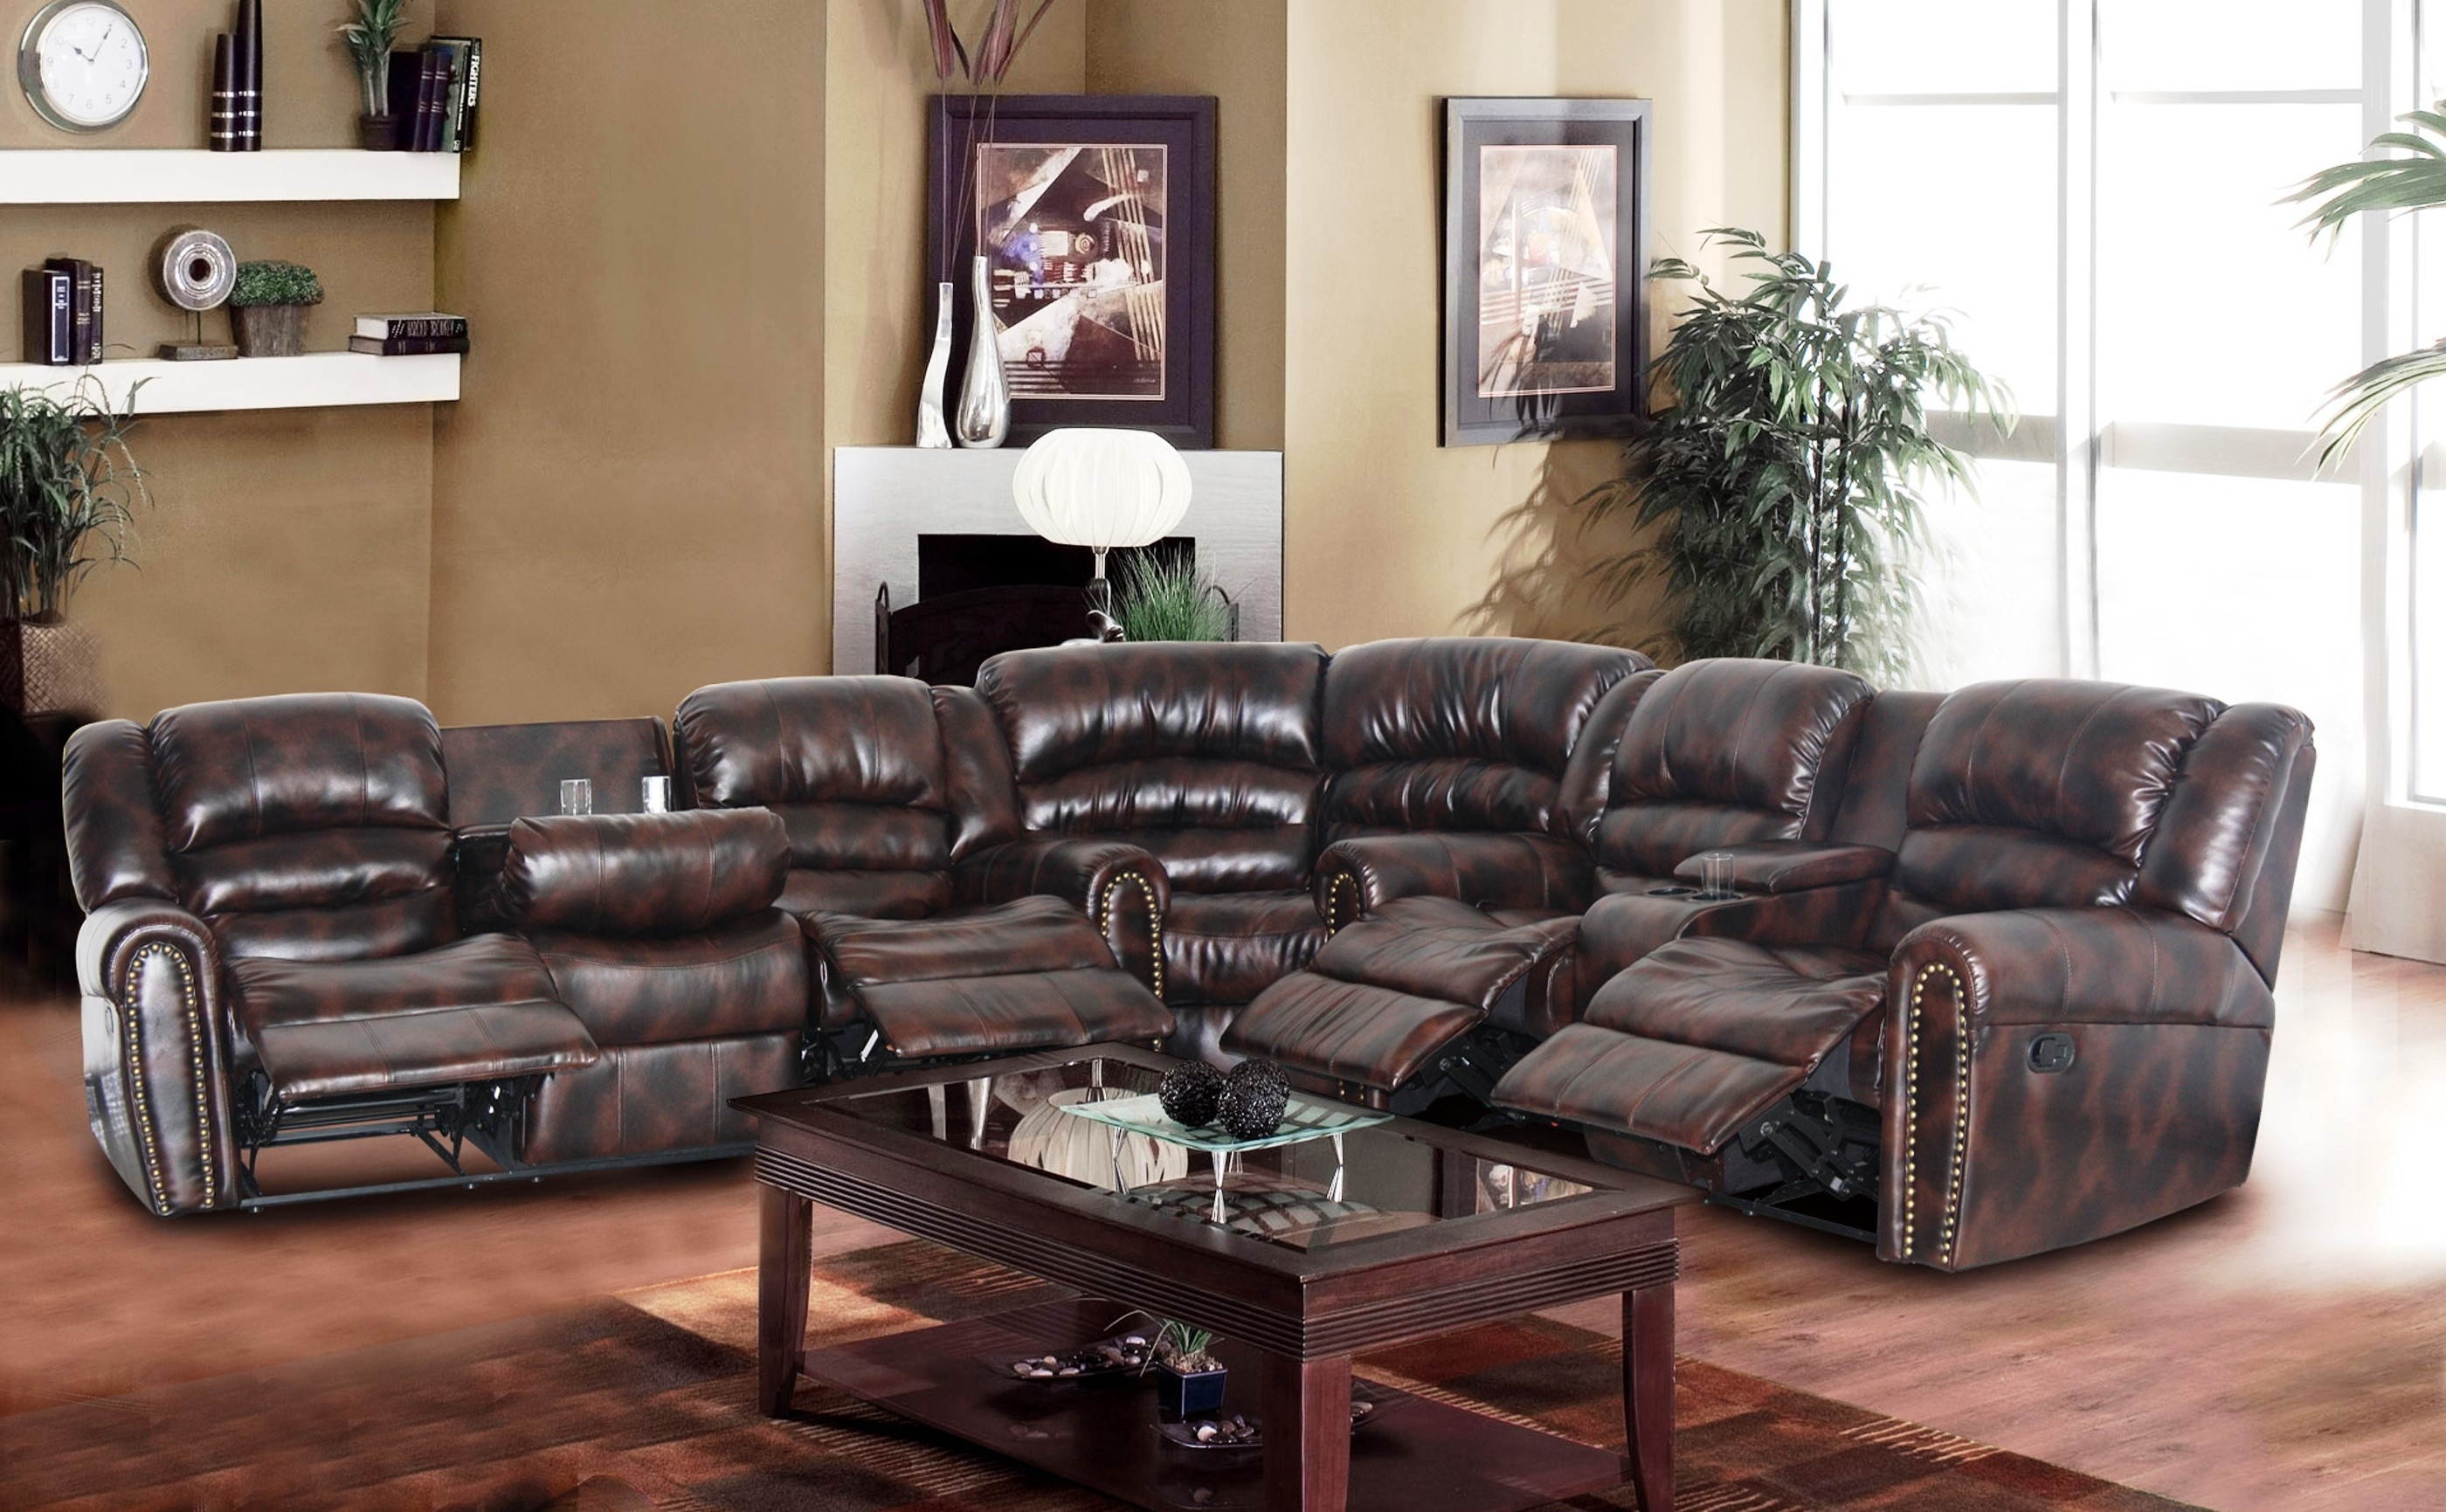 Fabric Reclining Sectional Costco Reclining Sectional With Cup Inside Latest Big U Shaped Sectionals (View 20 of 20)